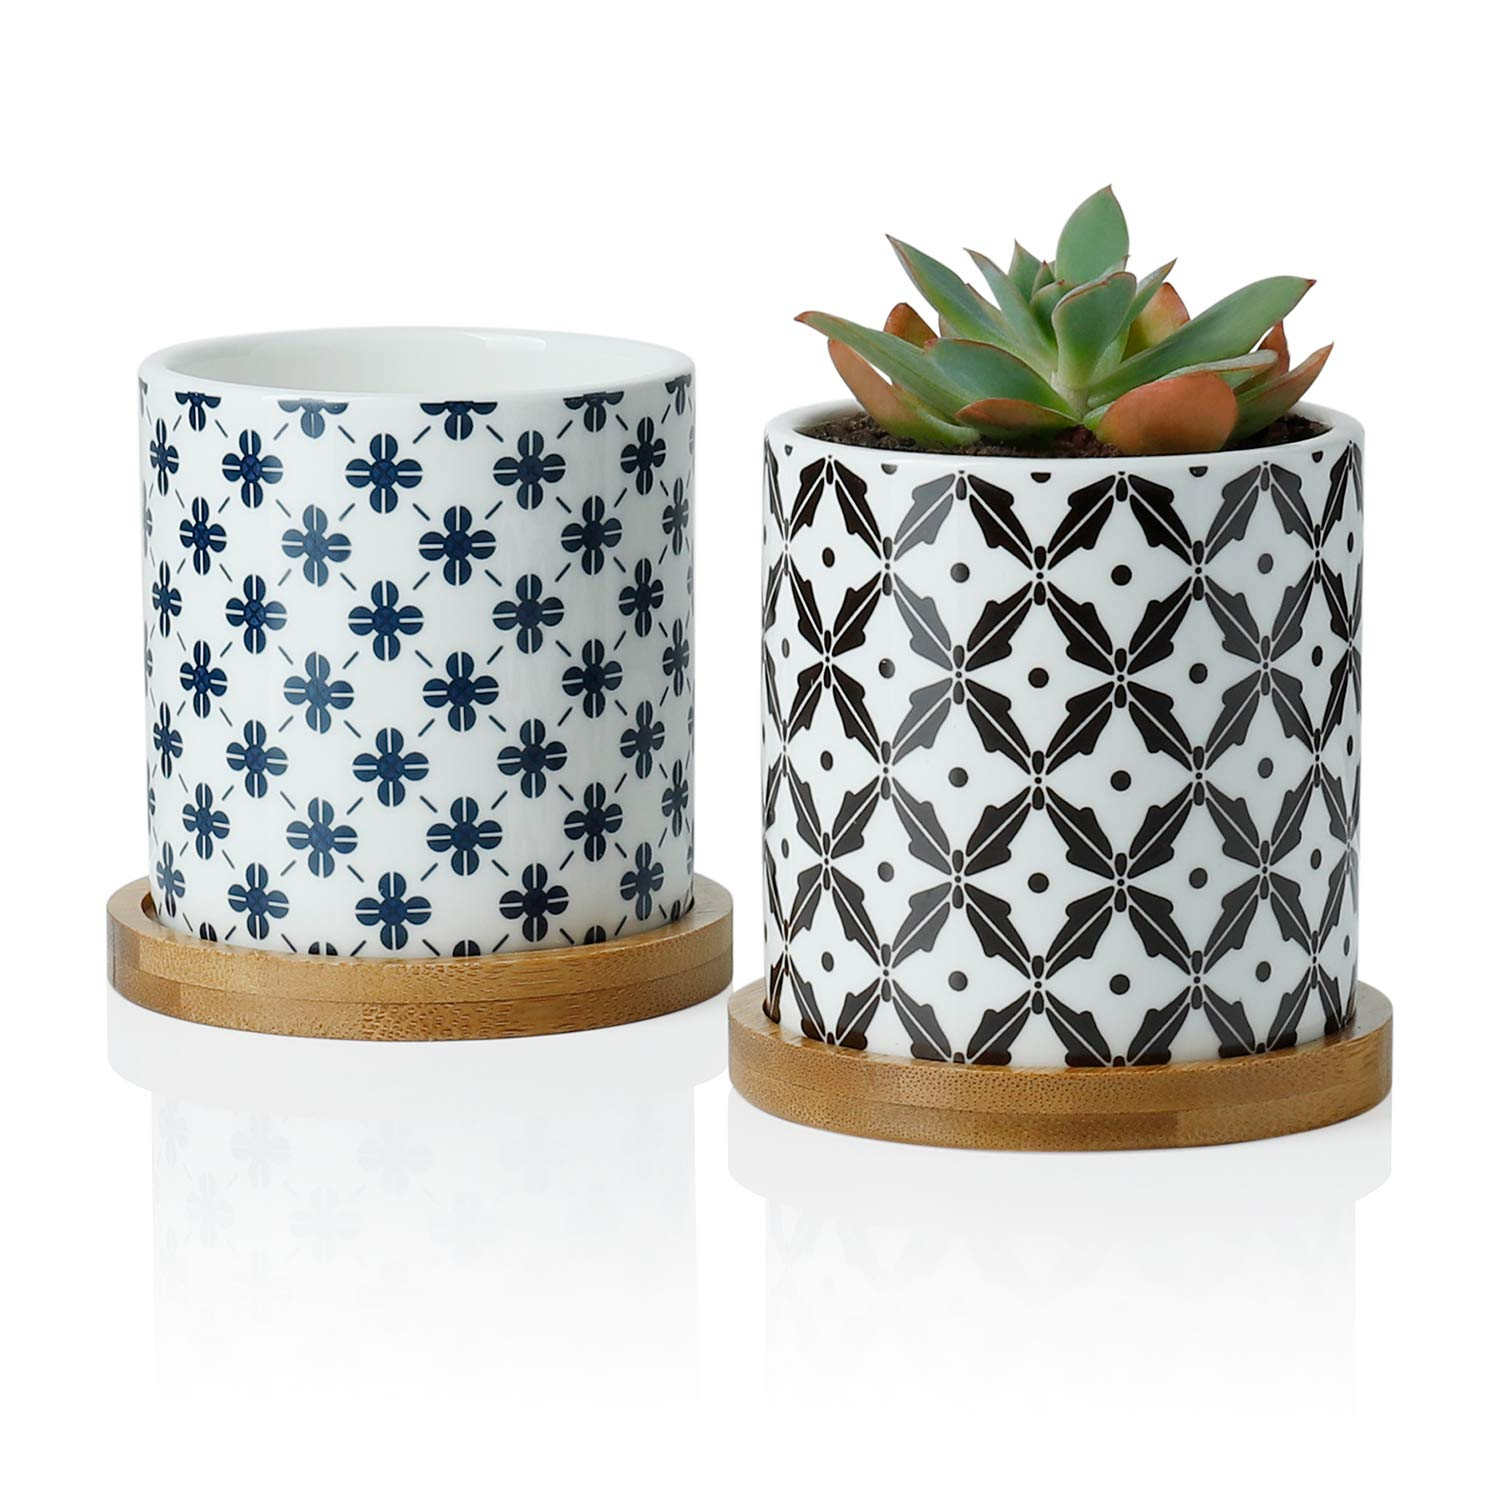 Greenaholics Succulent Plant Pots – 3 Inch Cylindrical Ceramic Planter for Cactus, Succulent Planting, with Drainage Hole, Bamboo Trays, Set of 2, Japanese Pattern, Navy Blue Black